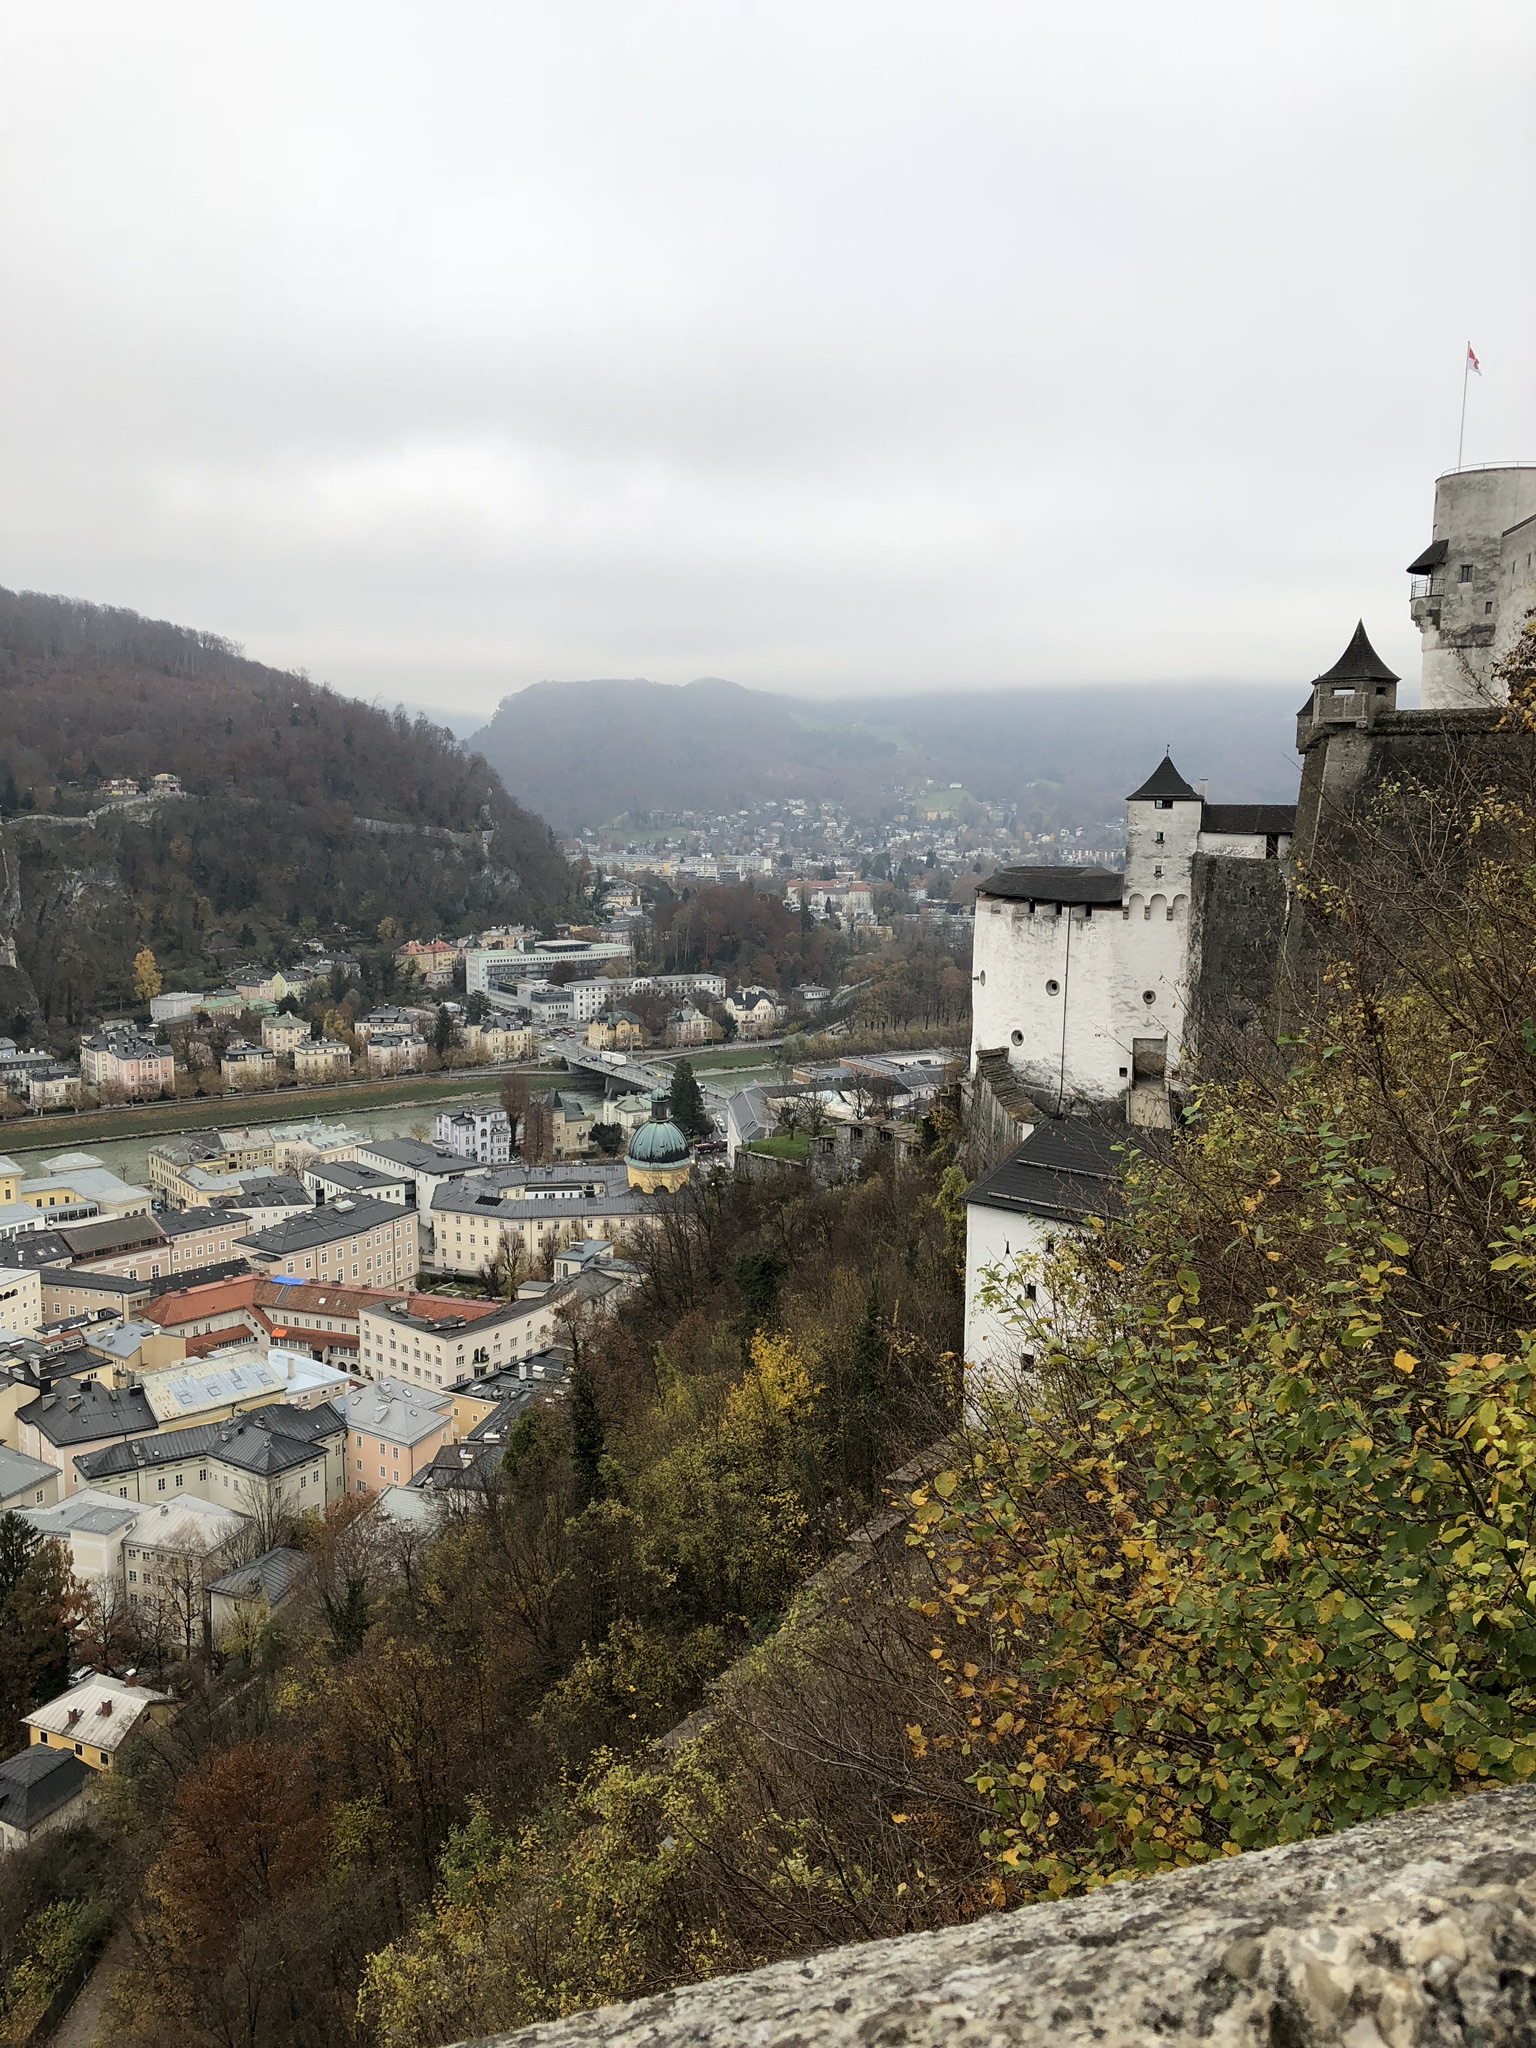 Salzburg, Austria travel guide for winter/November from livingforaged.com